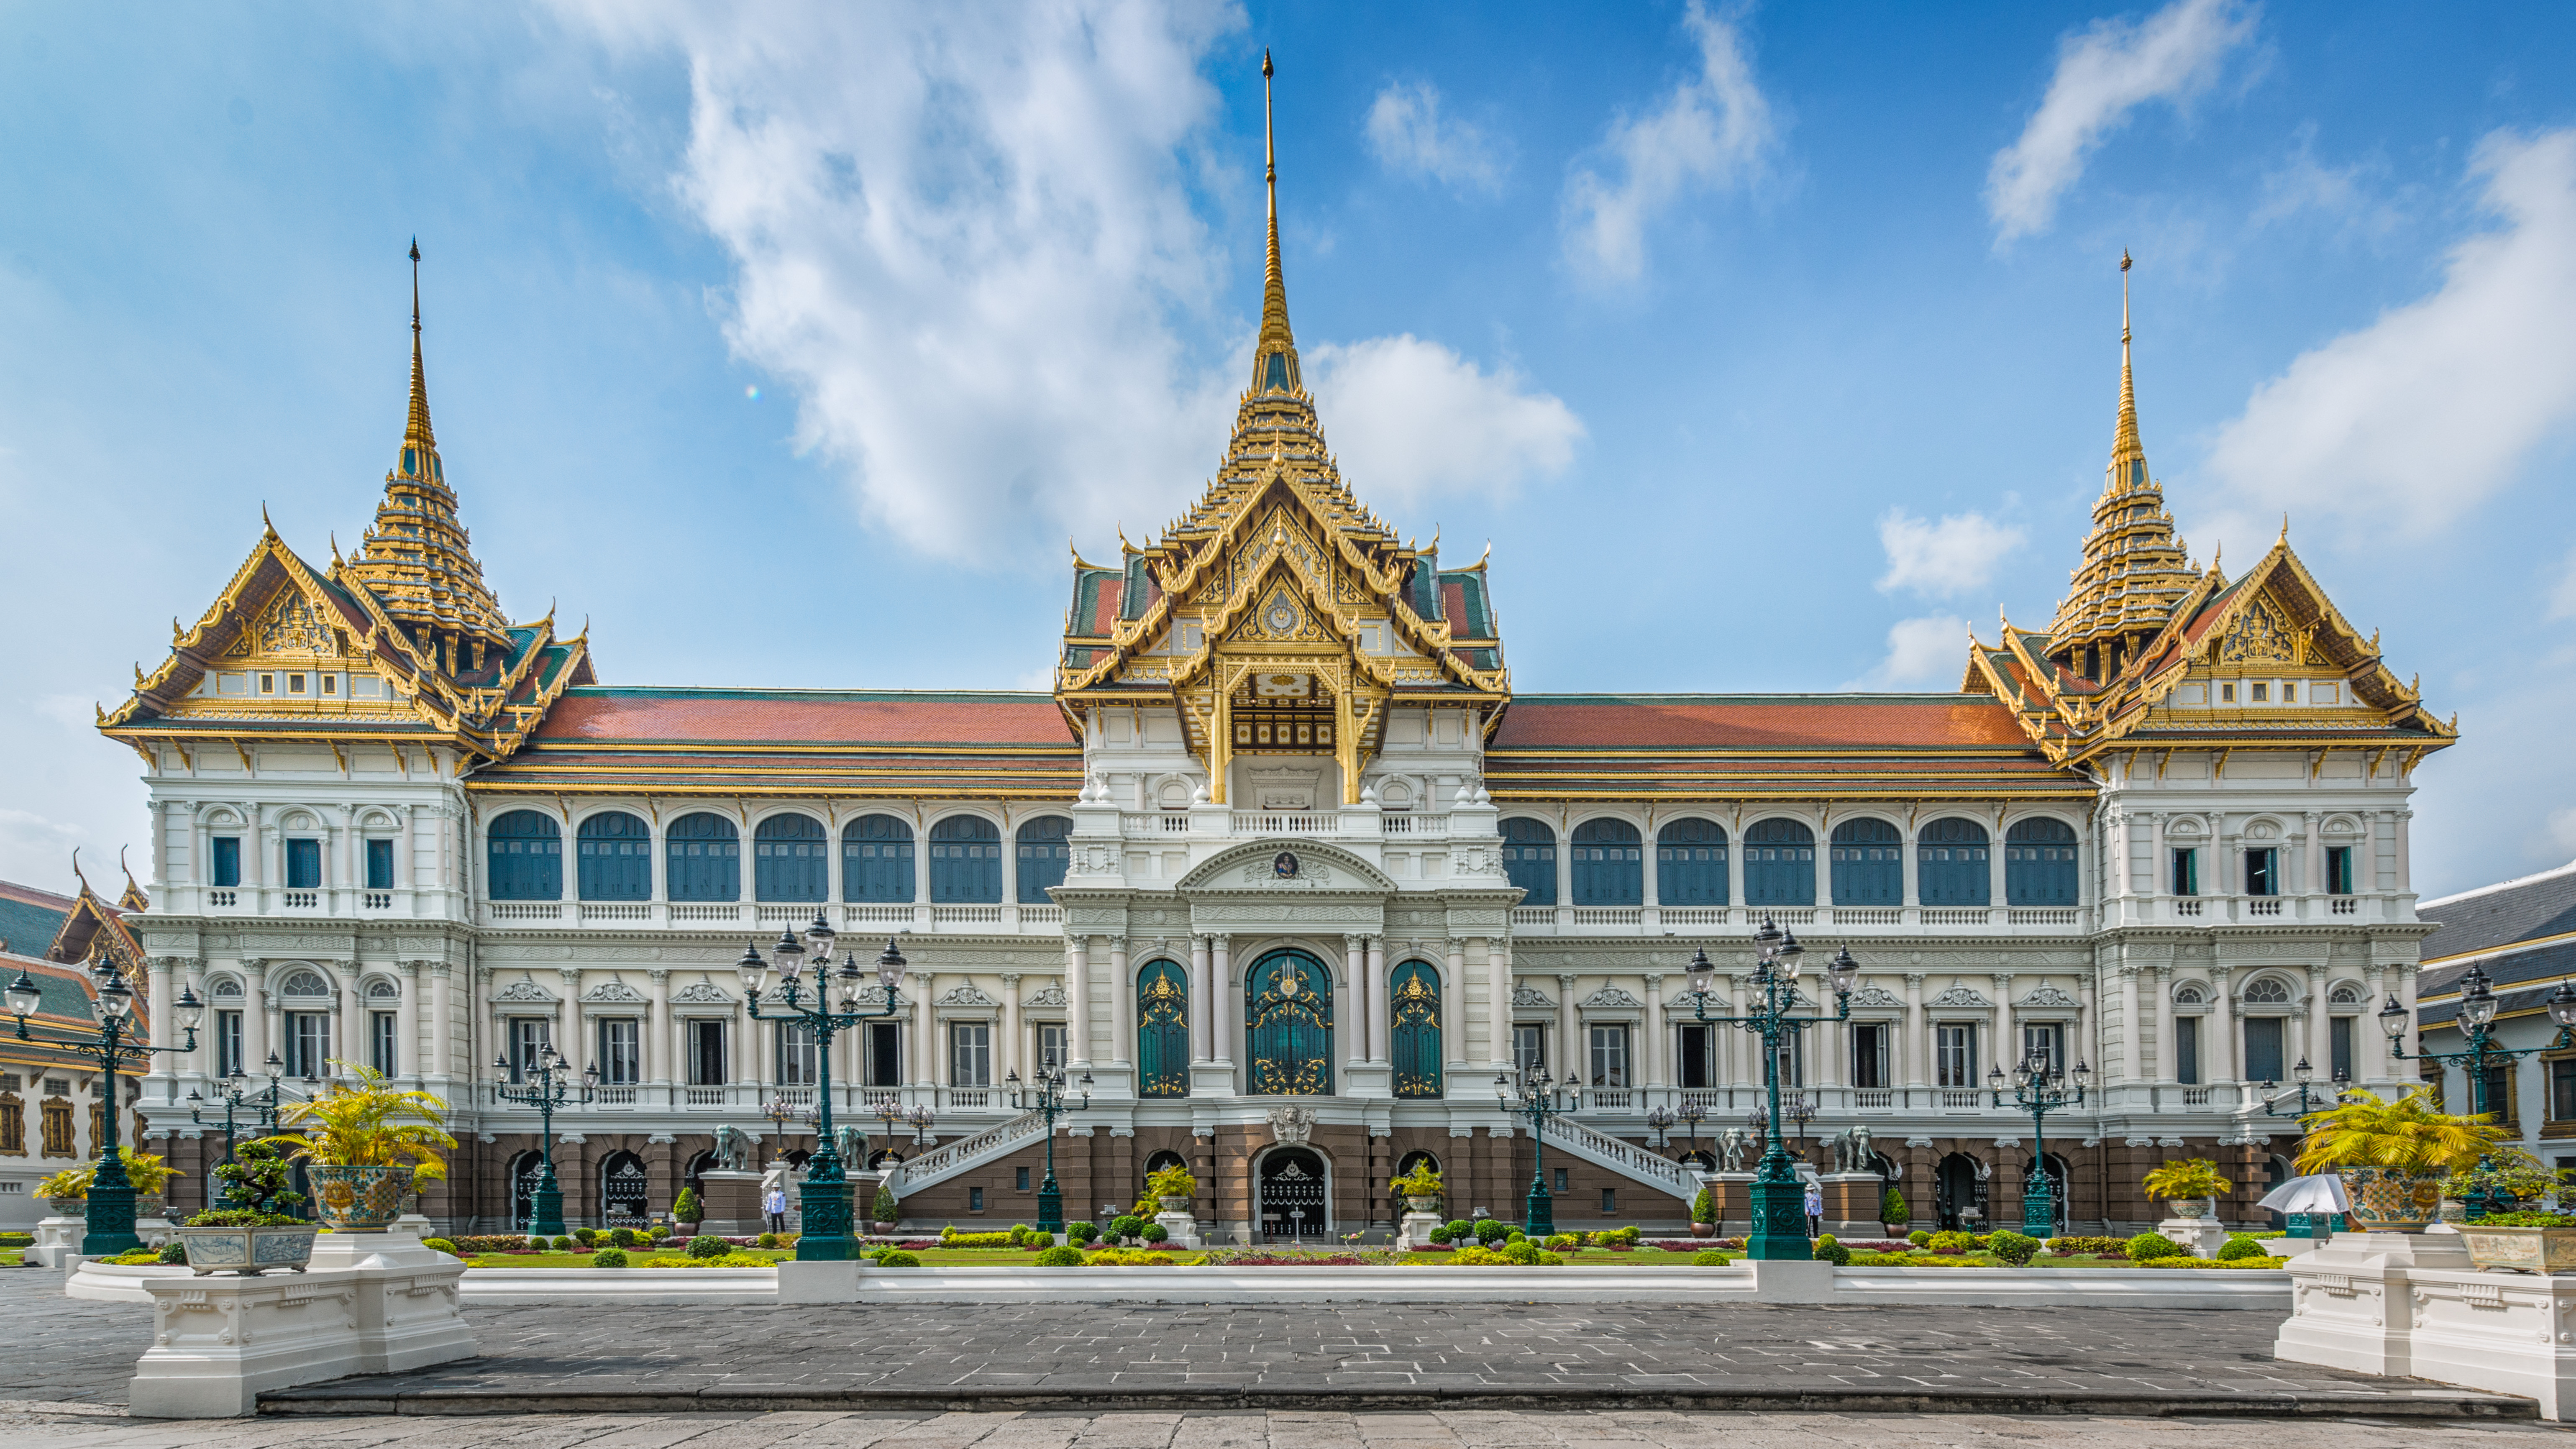 Phra Thinang Chakri Maha Prasat group of buildings in the center of the Grand Palace is a blend of Thai traditional architecture and a combination of 19th-century European styles. Photo taken by Andy Marchand on April 10, 2013.